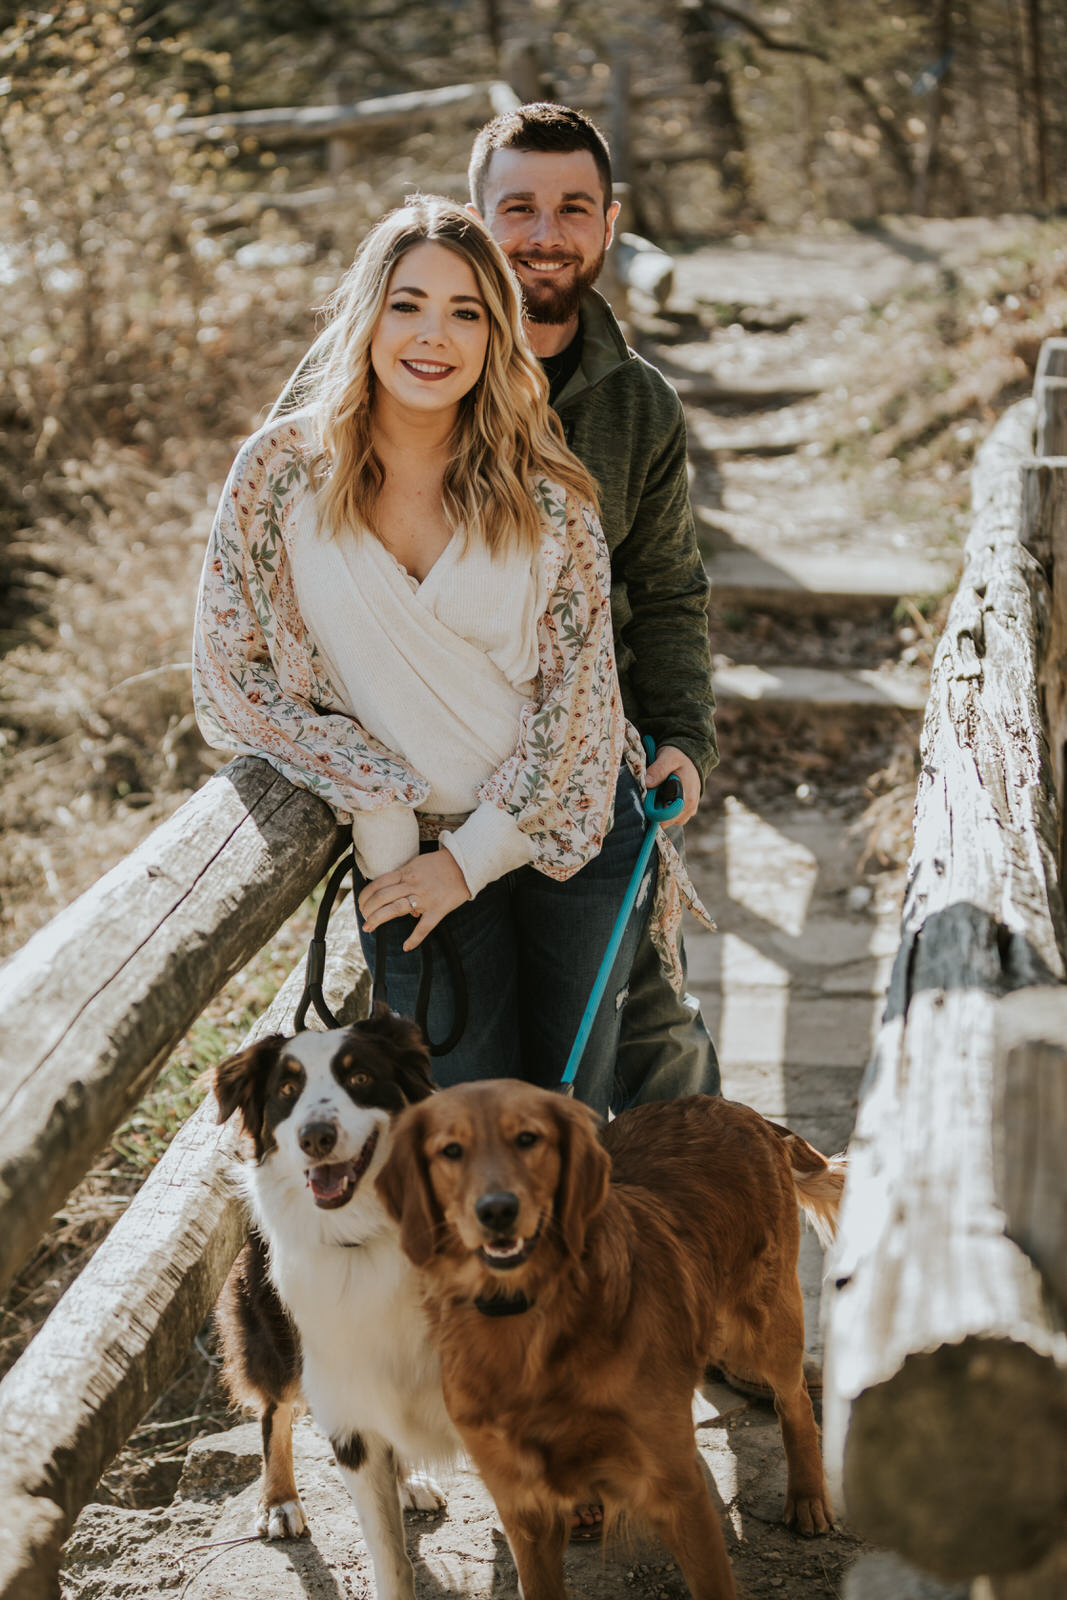 Lauren & Tom Adventurous Outdoor Engagement with Dogs